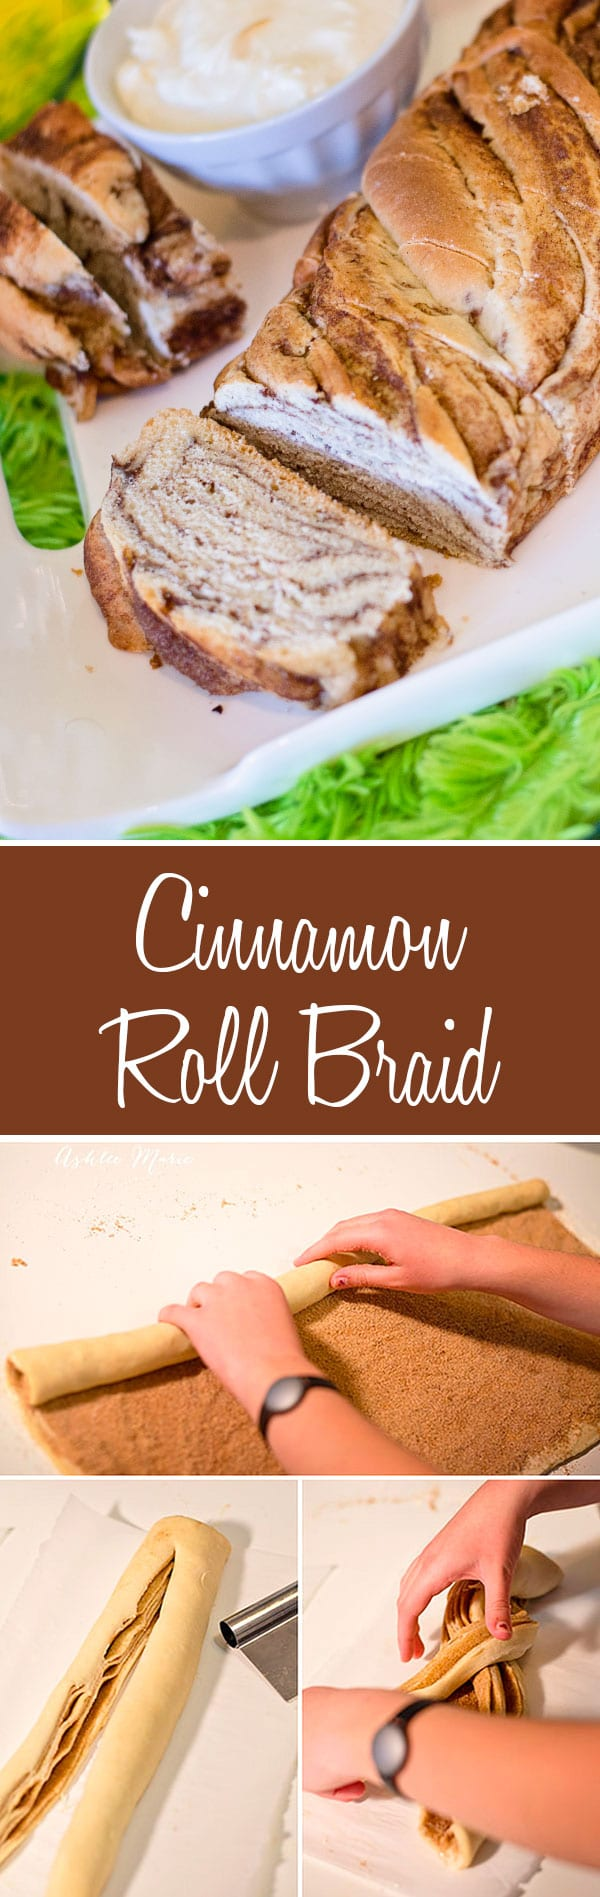 use a traditional cinnamon roll dough to slice and create this cinnamon roll braid.  It creates a lovely twist and serves nicely